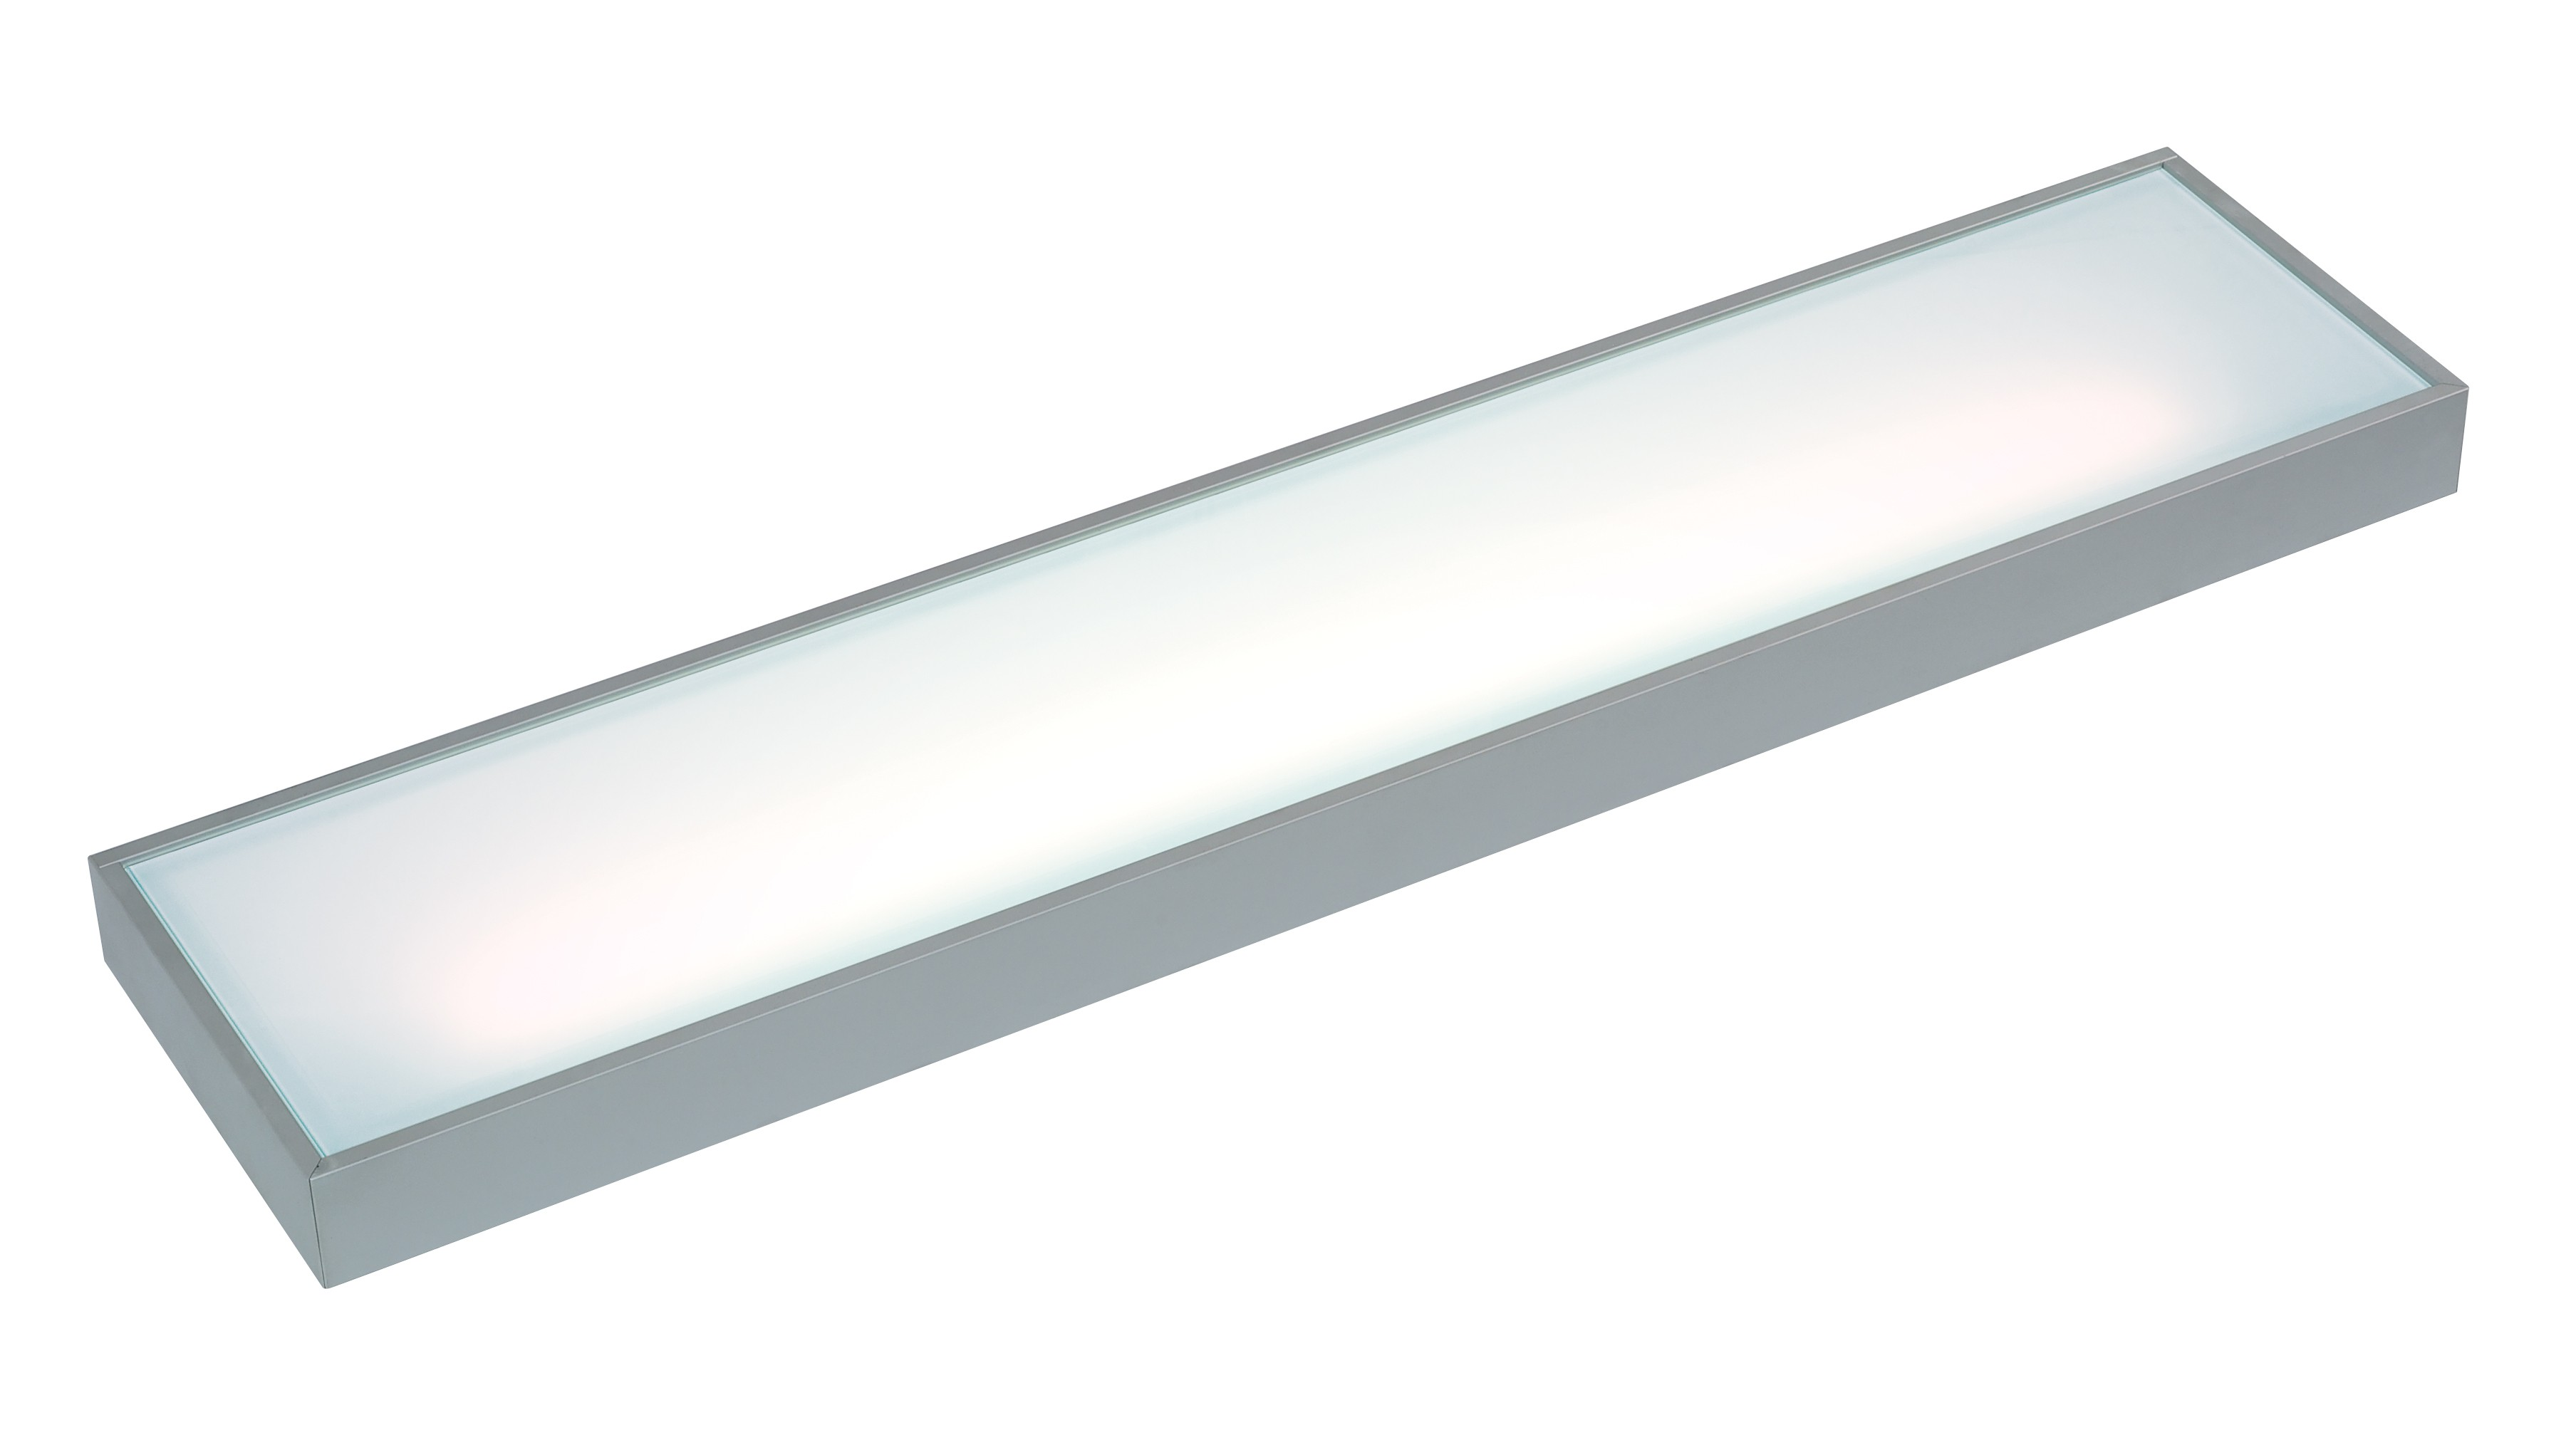 Shelf light major 8watt length 450mm finish alu/glass